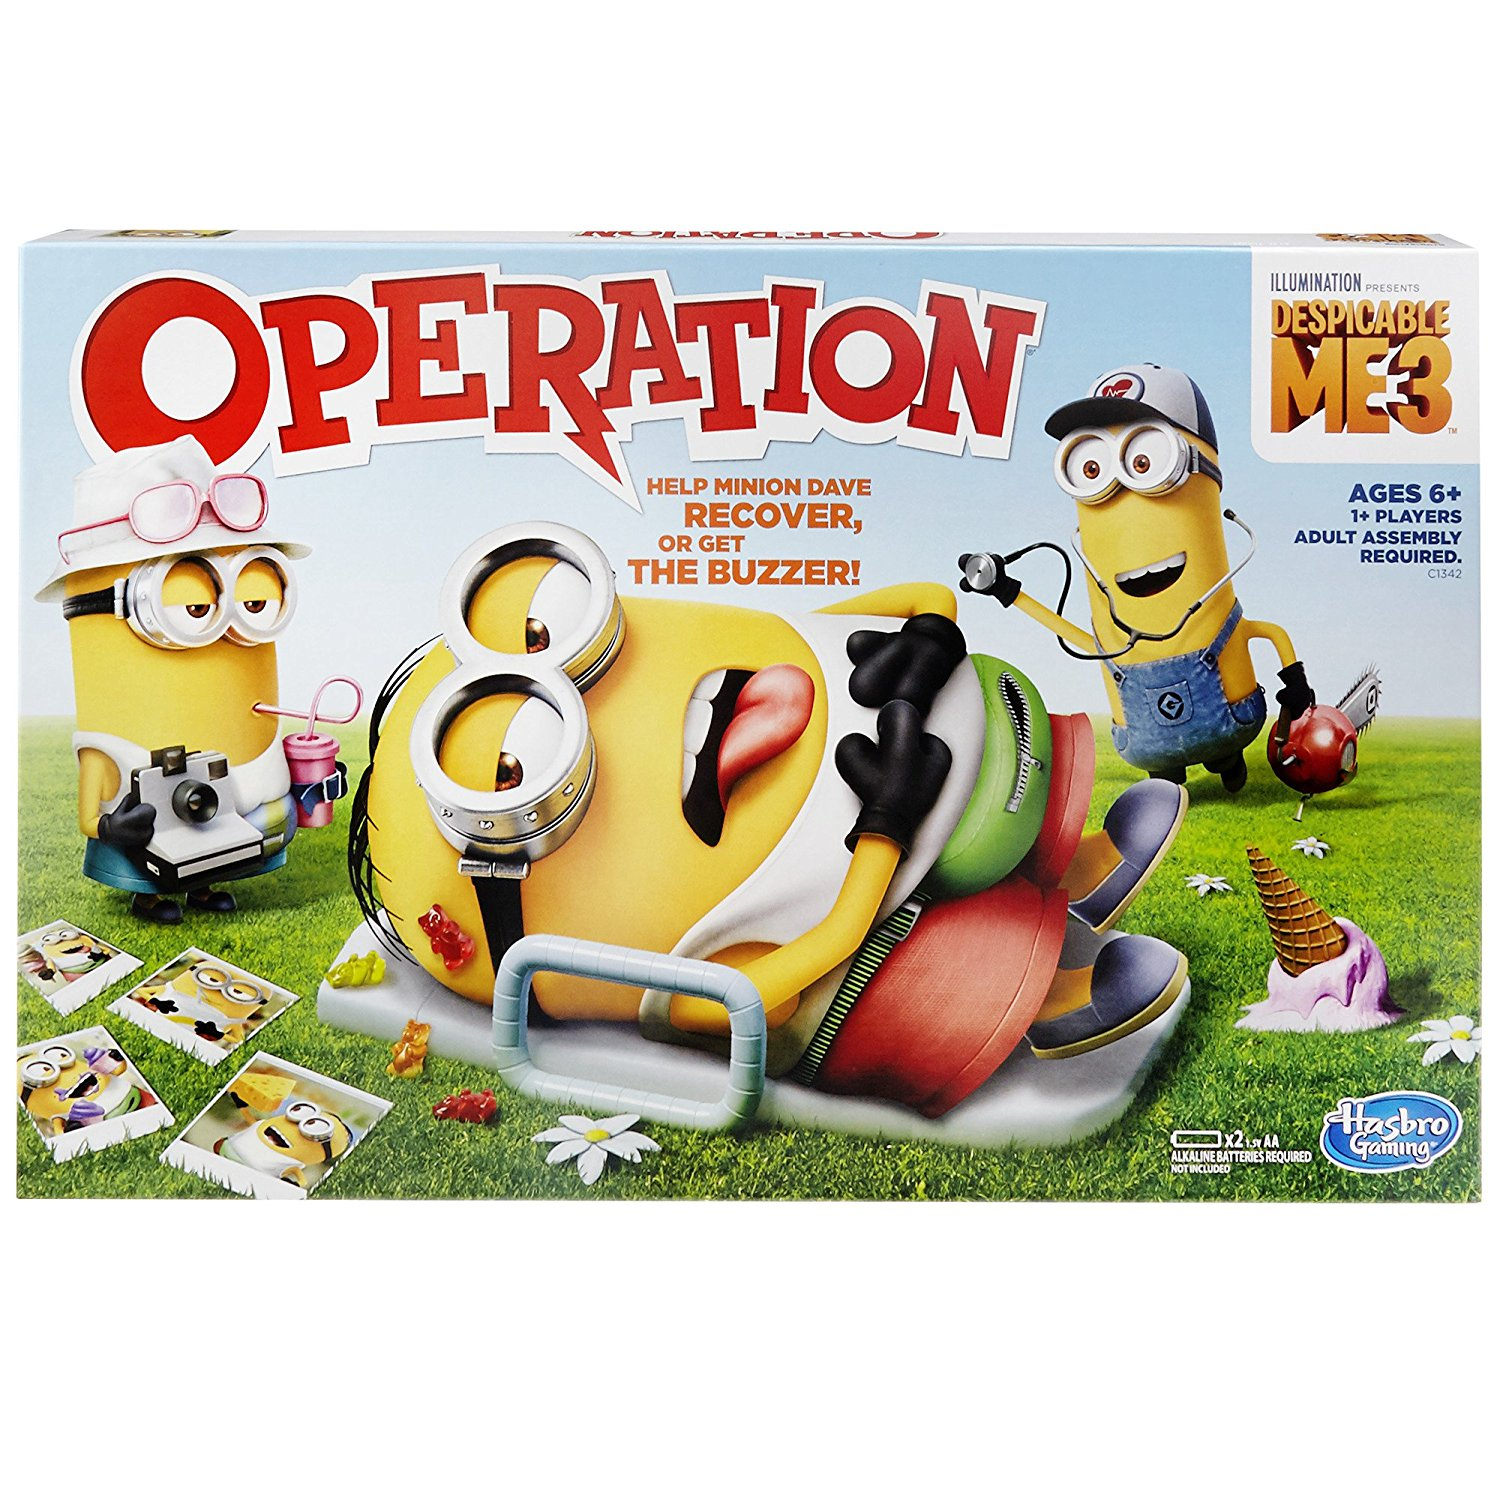 Despicable Me 3 Operation Game By Hasbro Ship from US by